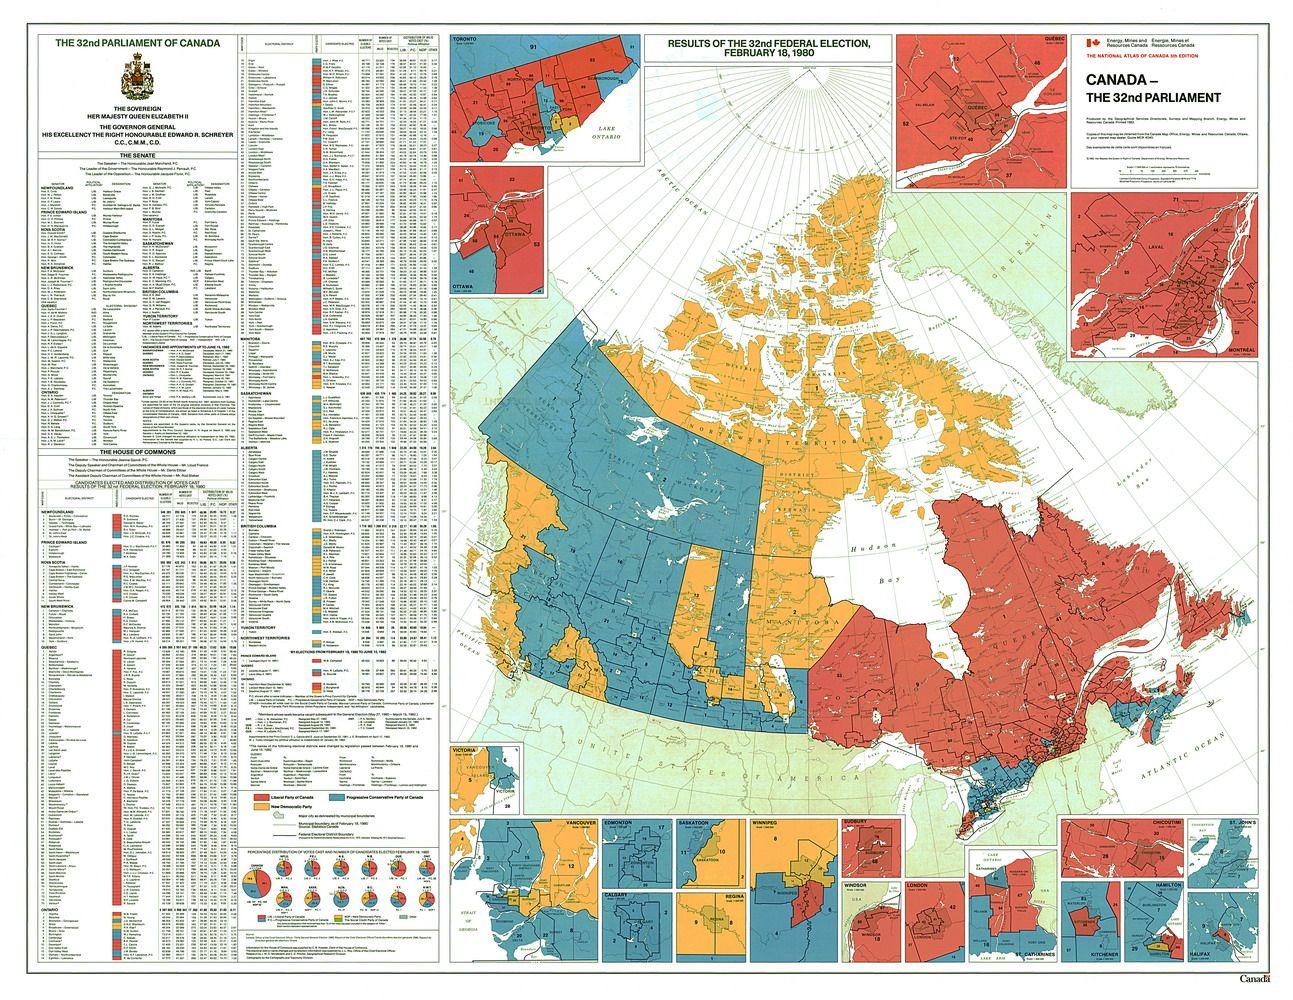 One of the most prominent examples of Canada's East-West divide. The Canada Election Map on